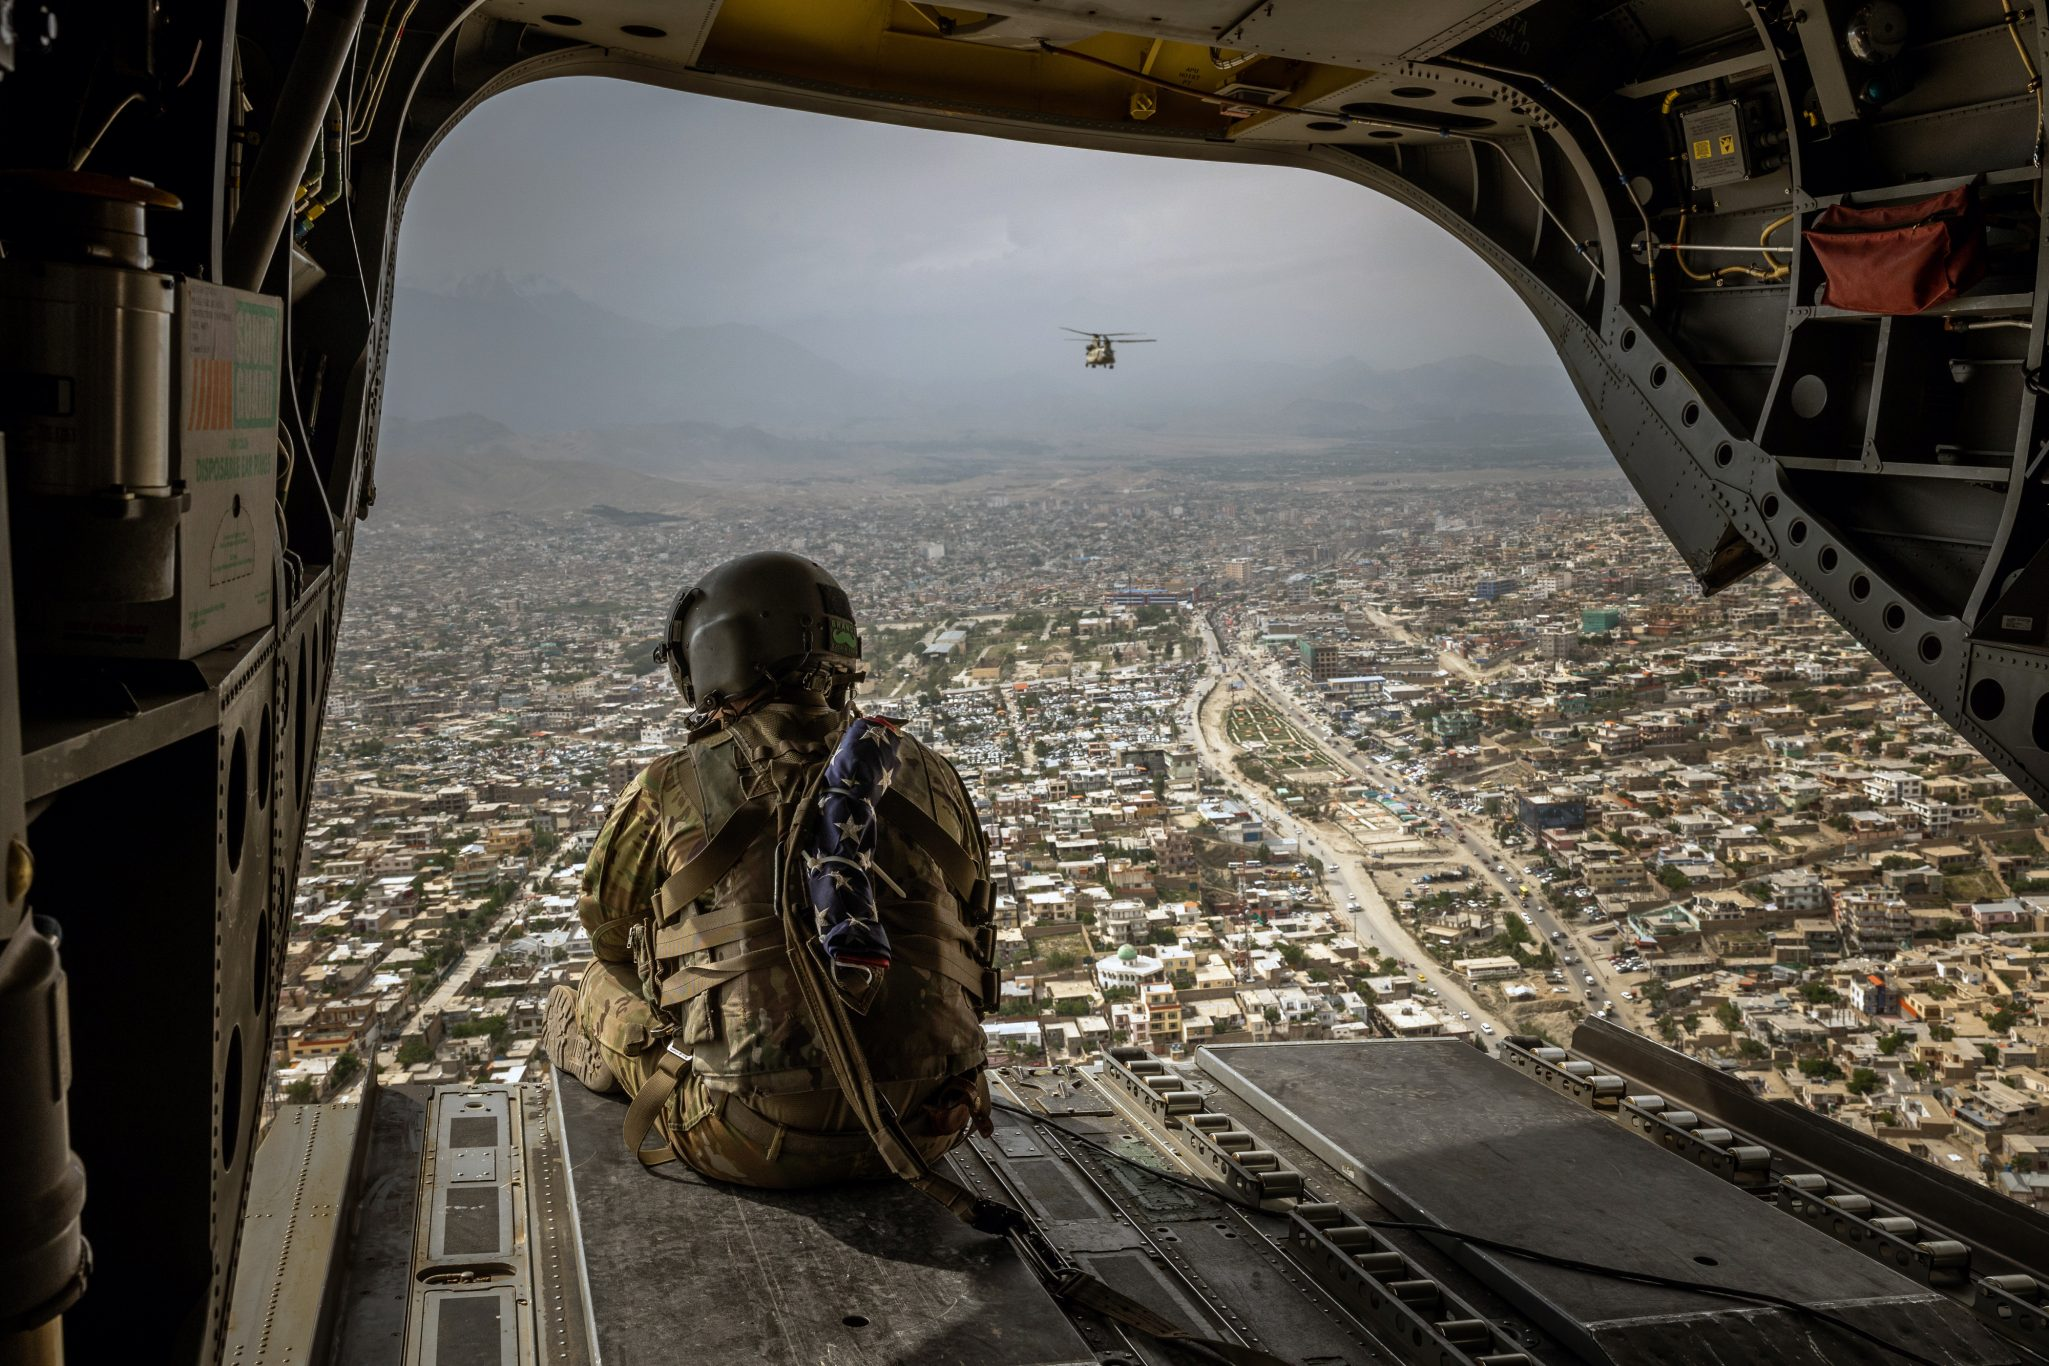 US forces shy away in midnight from the 'infamous' Bagram base without intimation